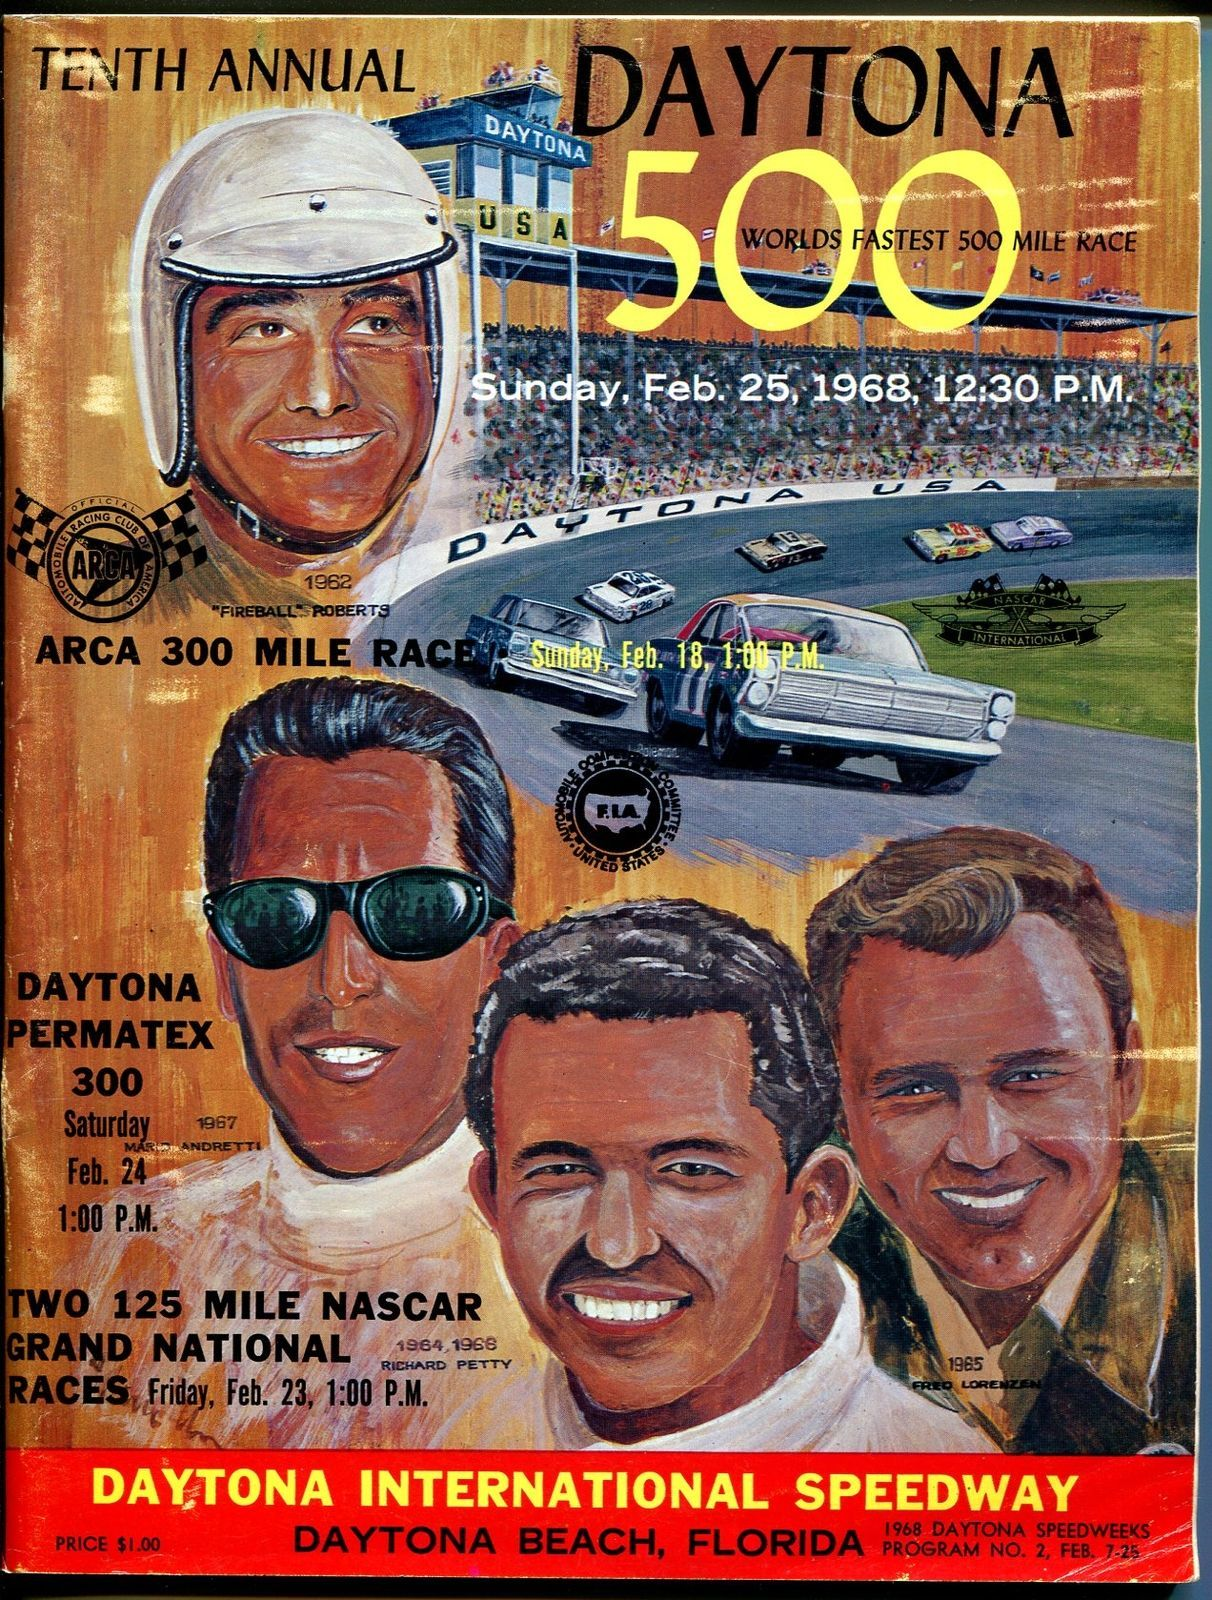 Primary image for Daytona Int'l Speedway NASCAR Daytona 500 Program 2/1968-Petty-Roberts-VG